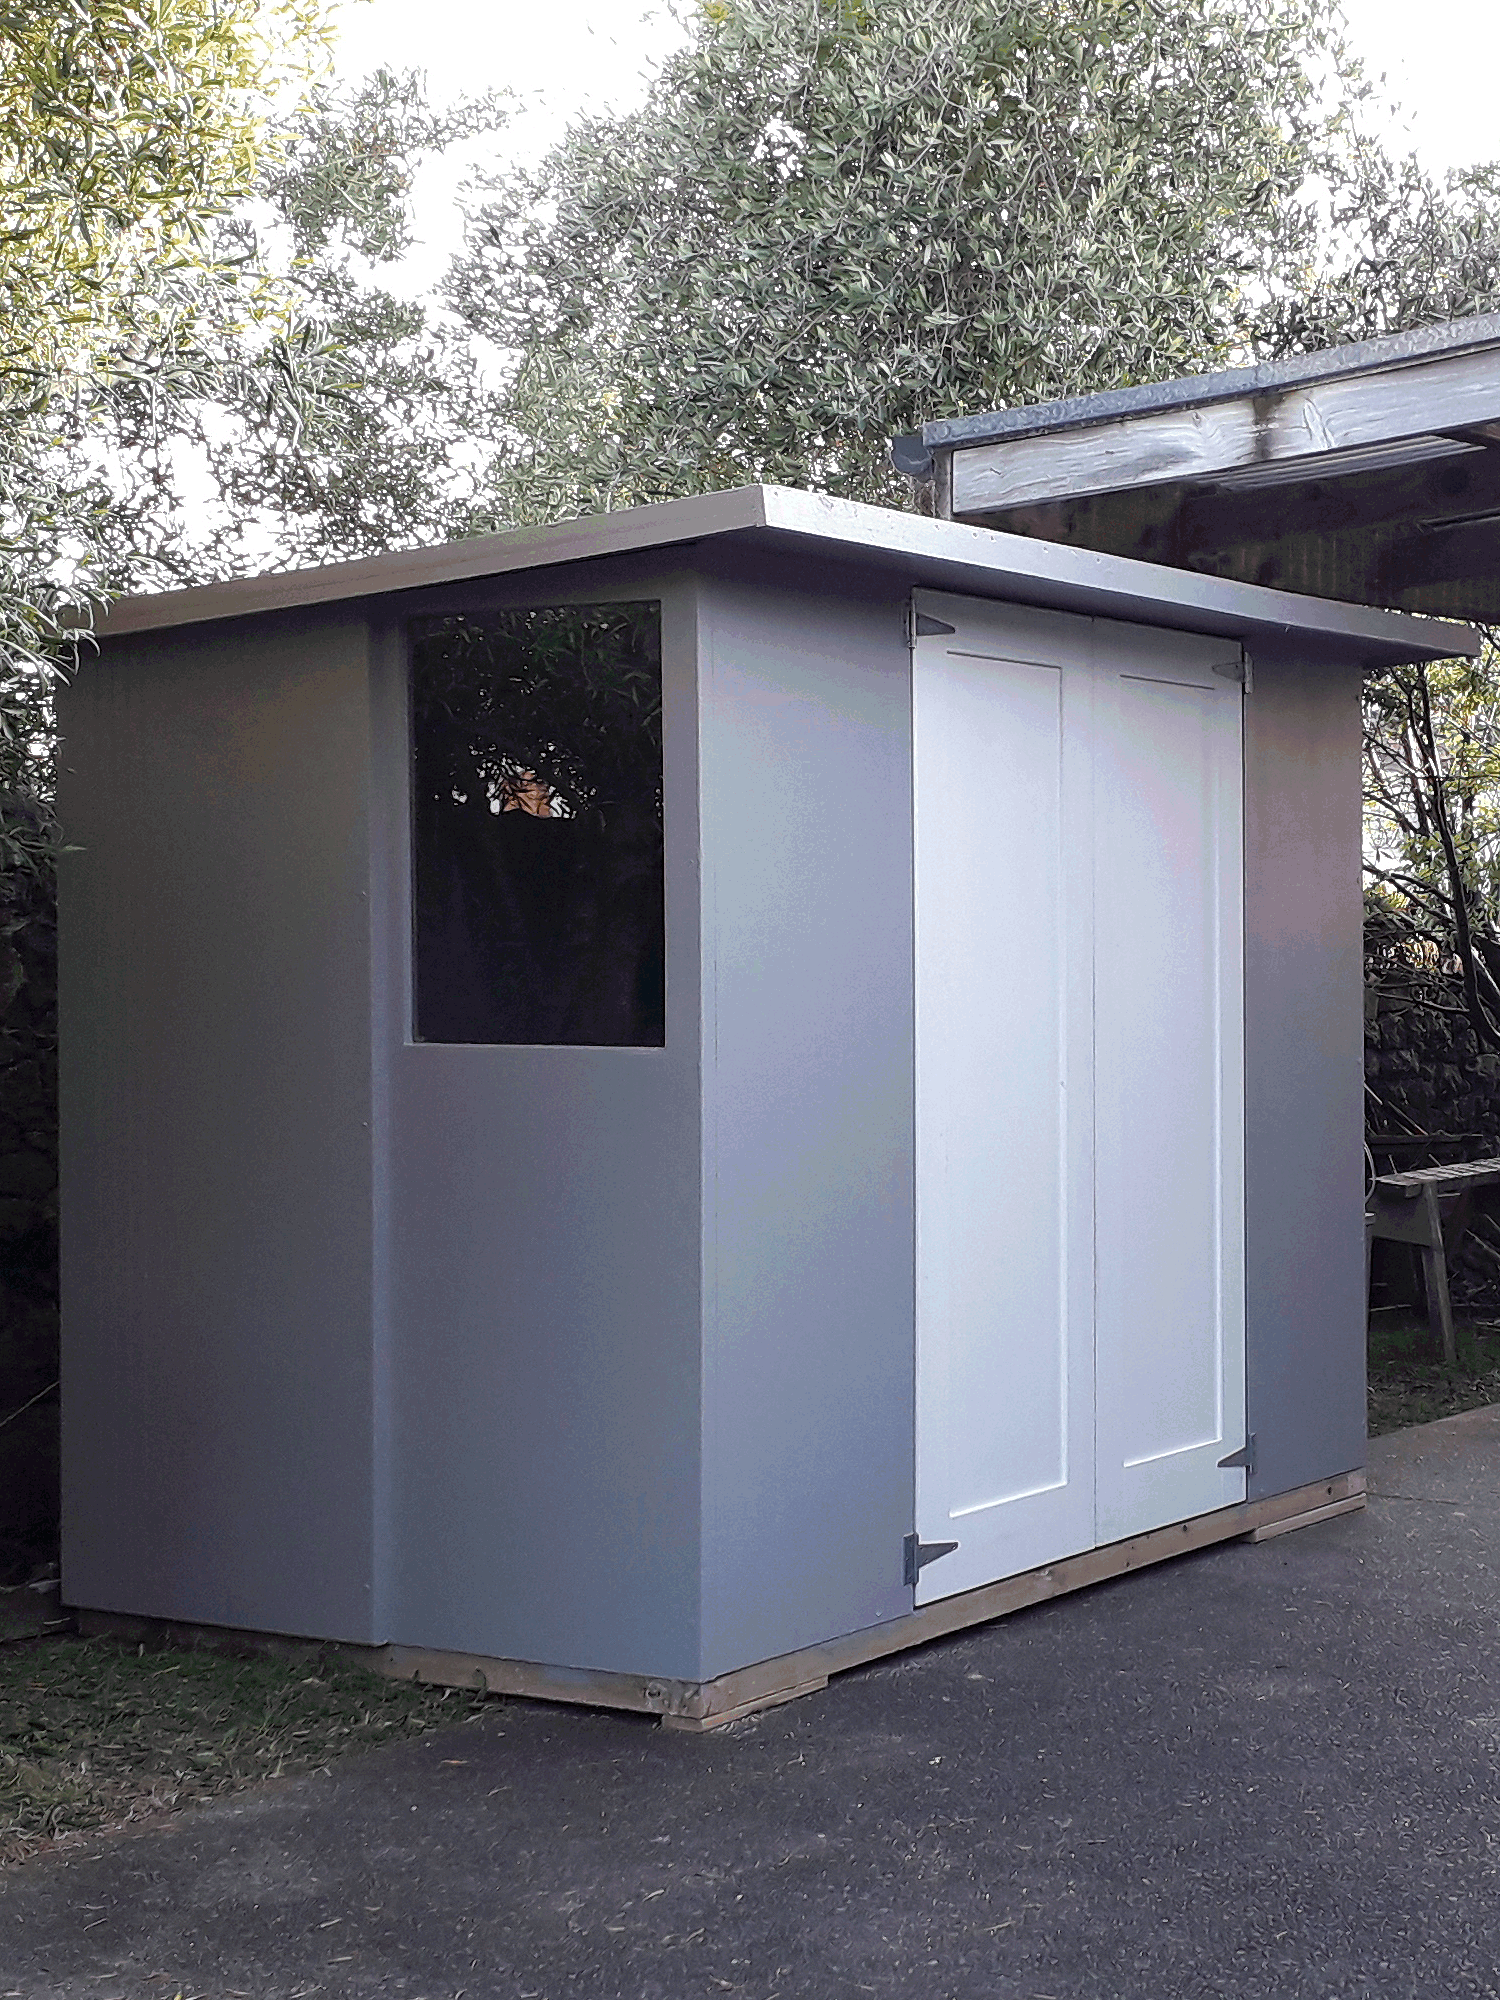 Shed doors put in